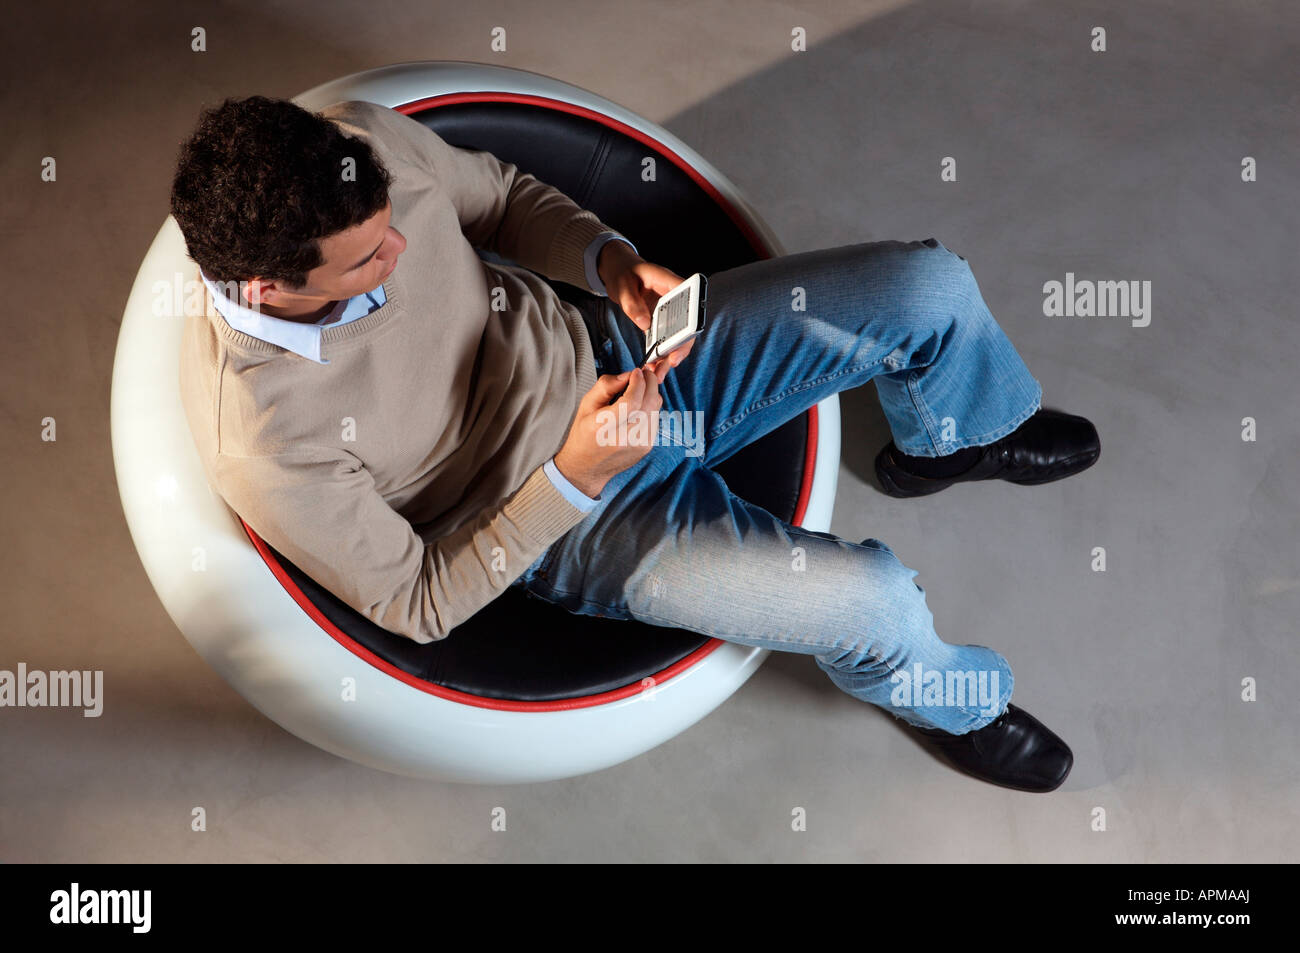 Man with electronic agenda - Stock Image